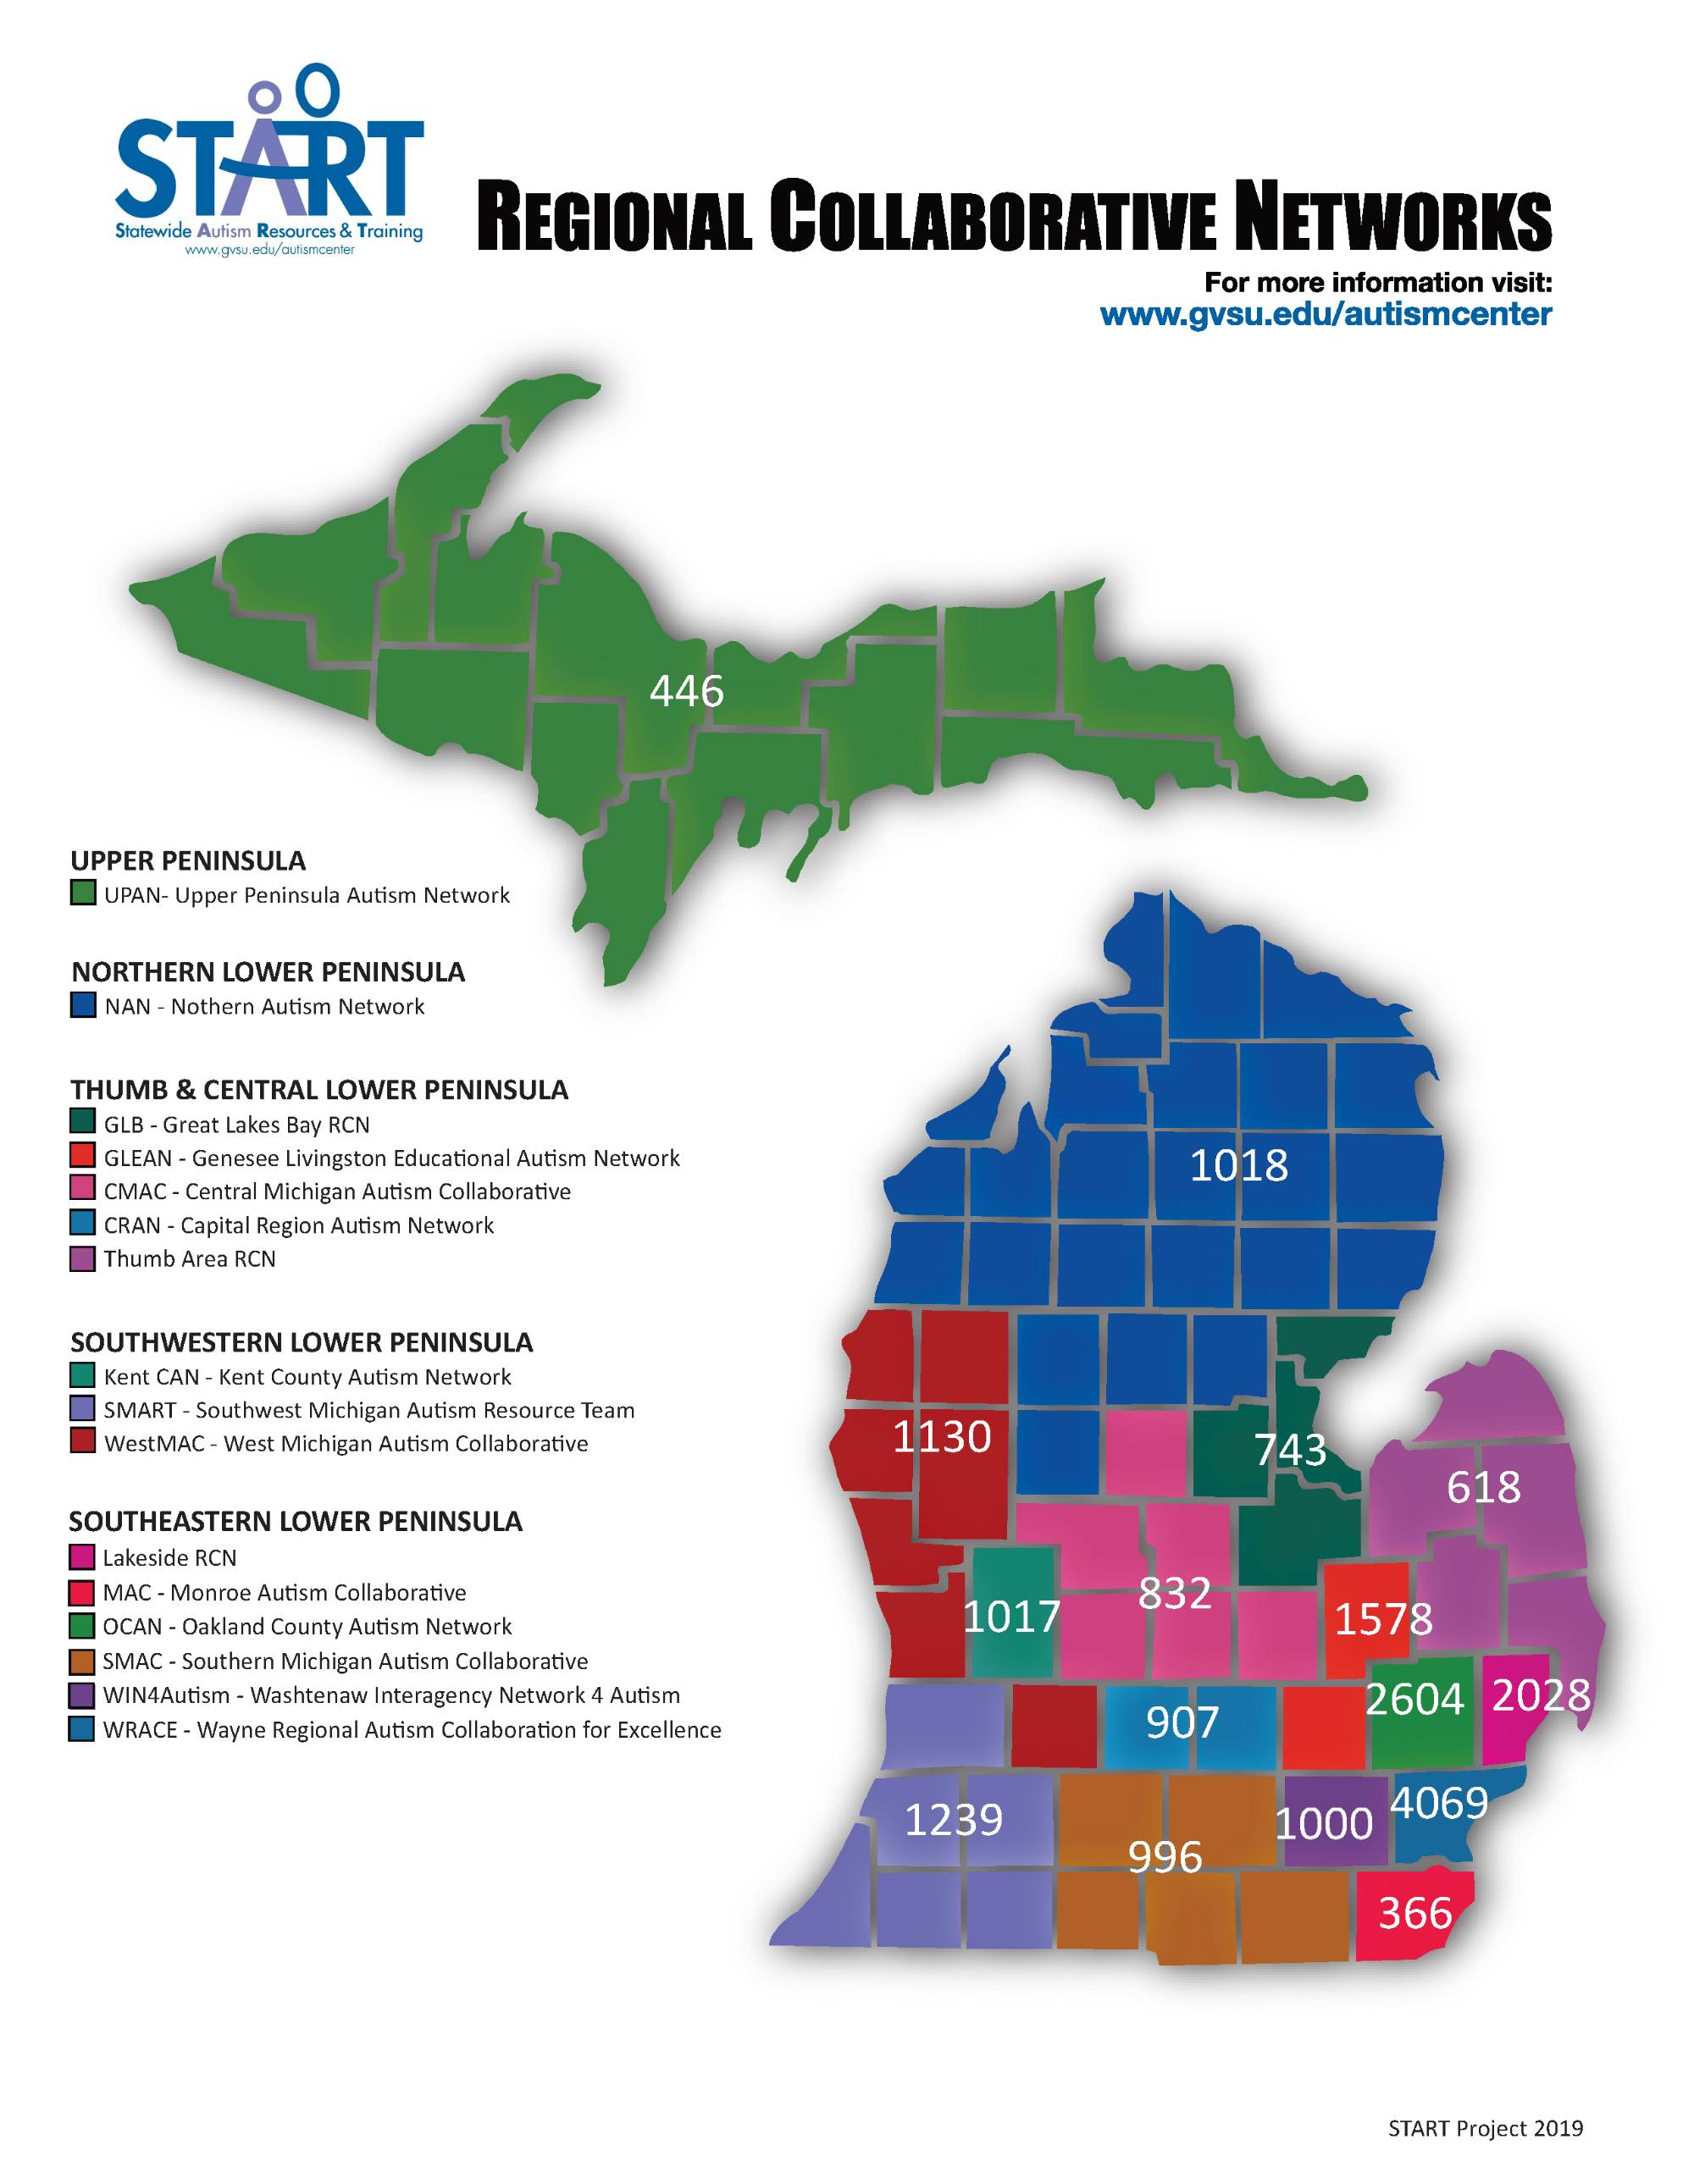 Map of Michigan with Students with ASD per RCN